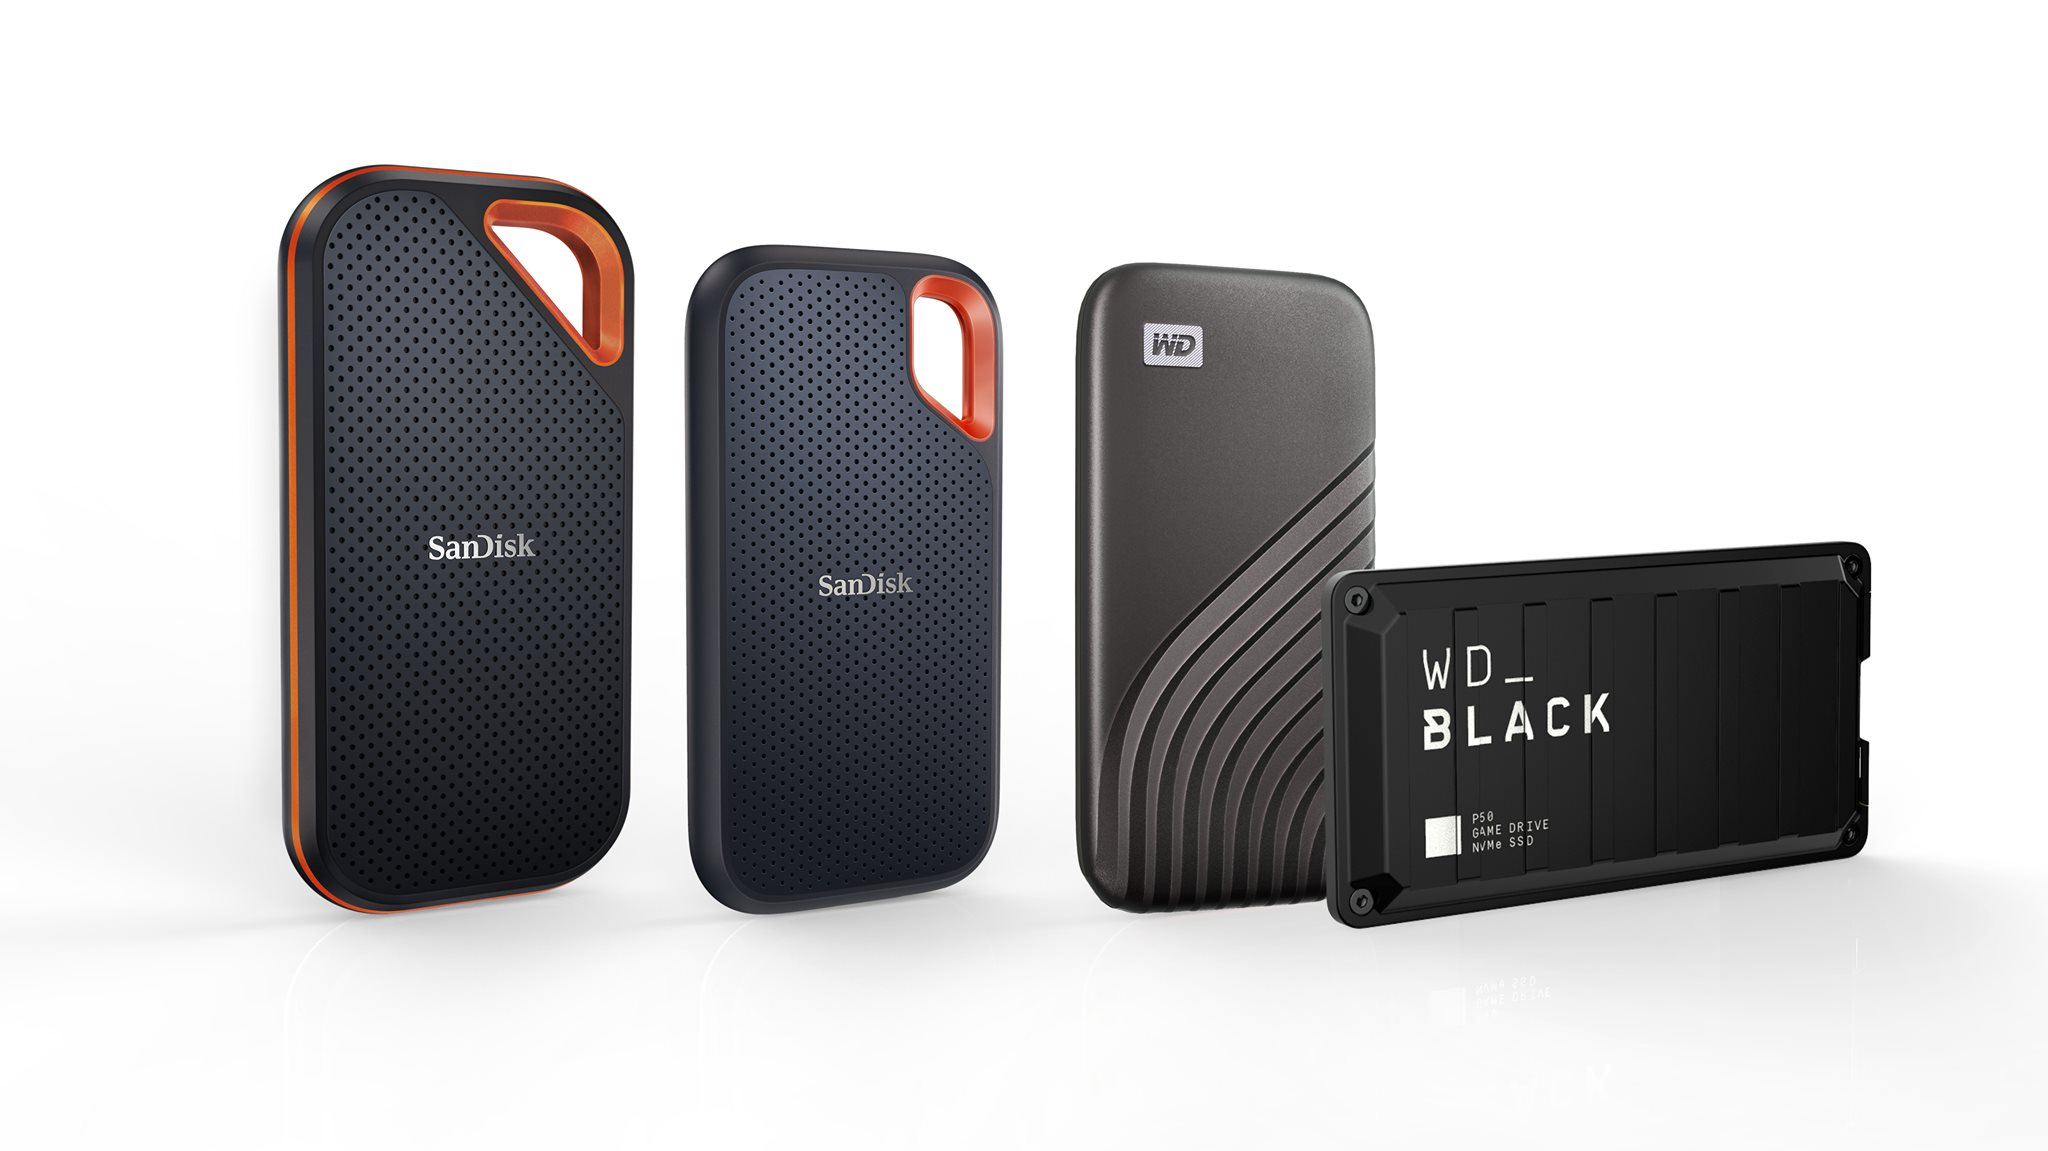 Announced today at #CES2021! Our #SanDisk Extreme Portable and Pro Portable SSDs now come in 4TB capacity! Learn more: 4TB SanDisk Extreme Pro Portable SSD: www.tomtop.com